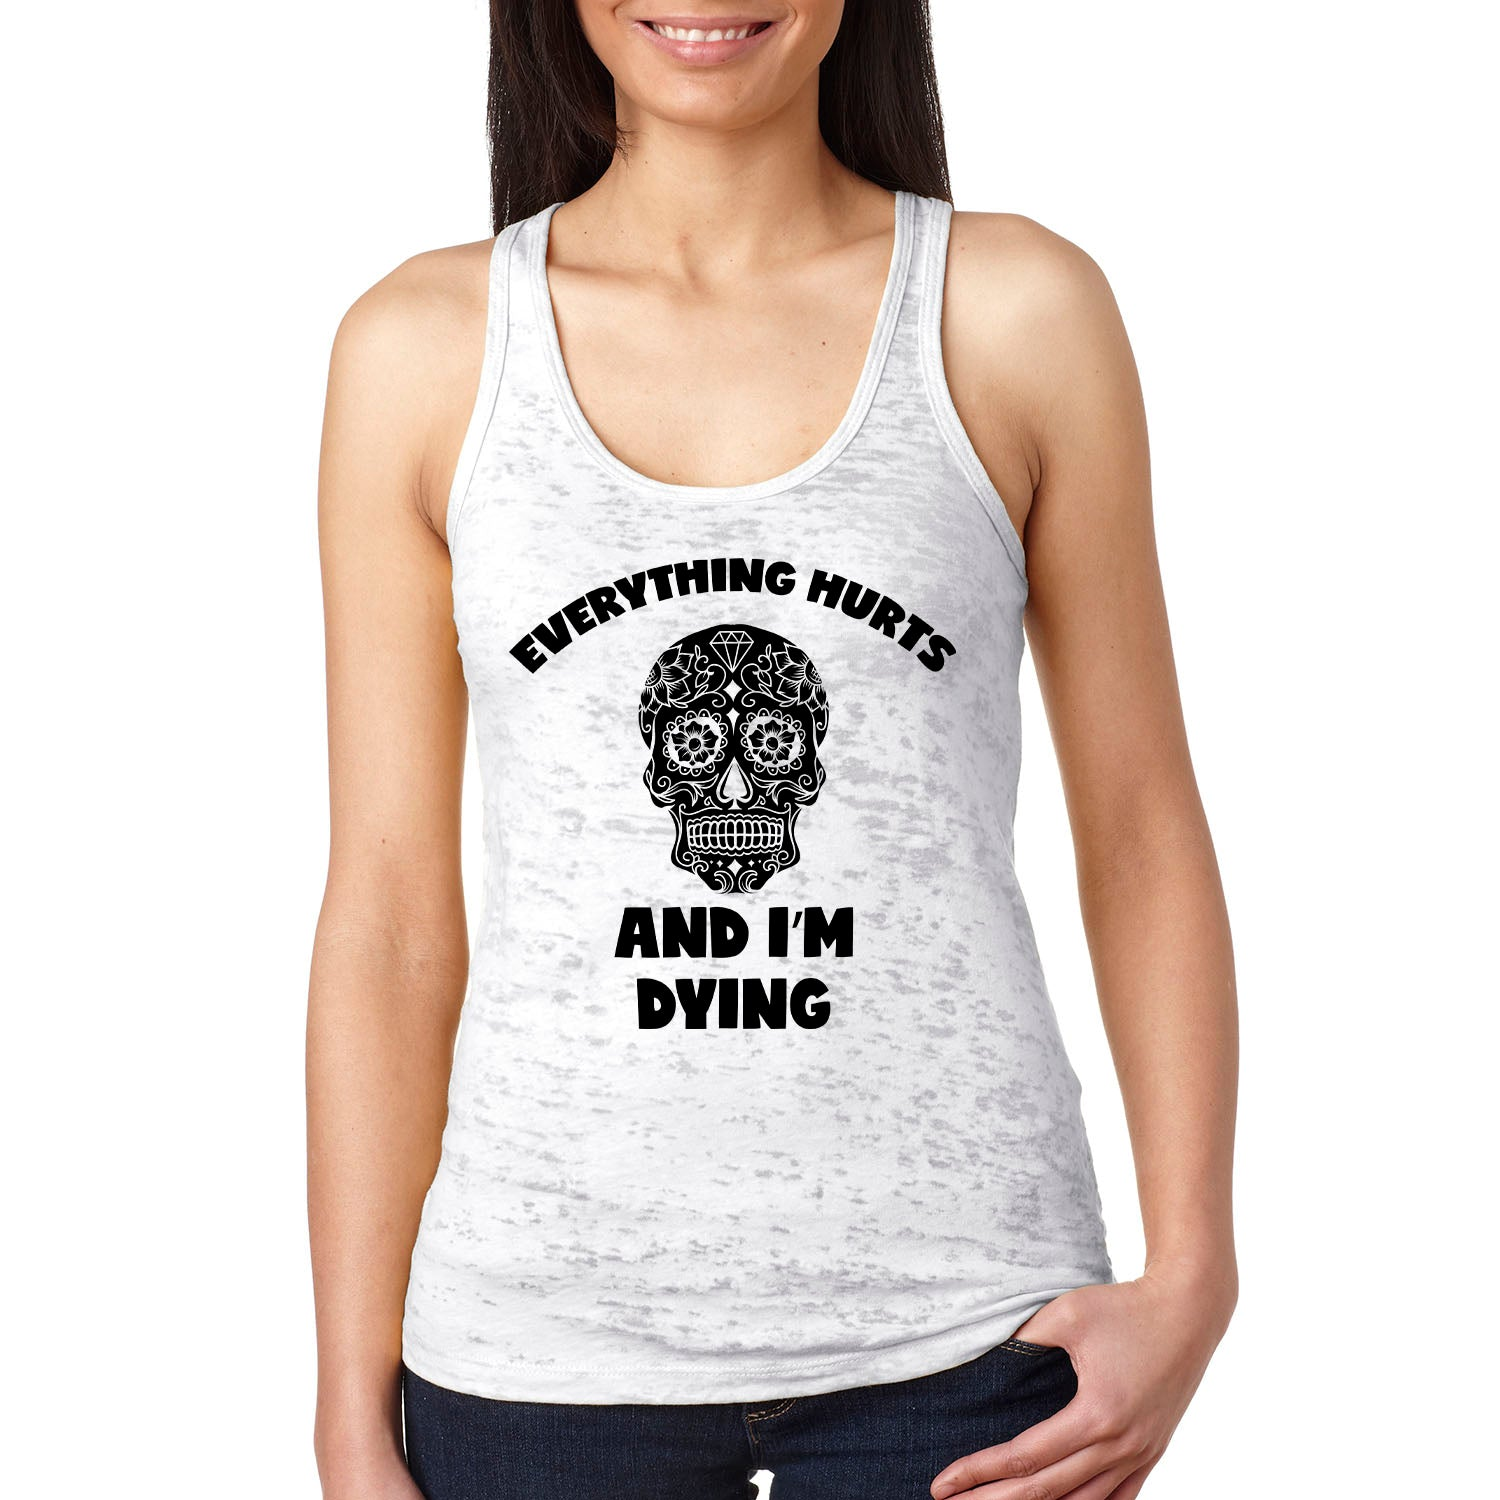 Everything Hurts And I'm Dying Ladies' Burnout Racerback Tank